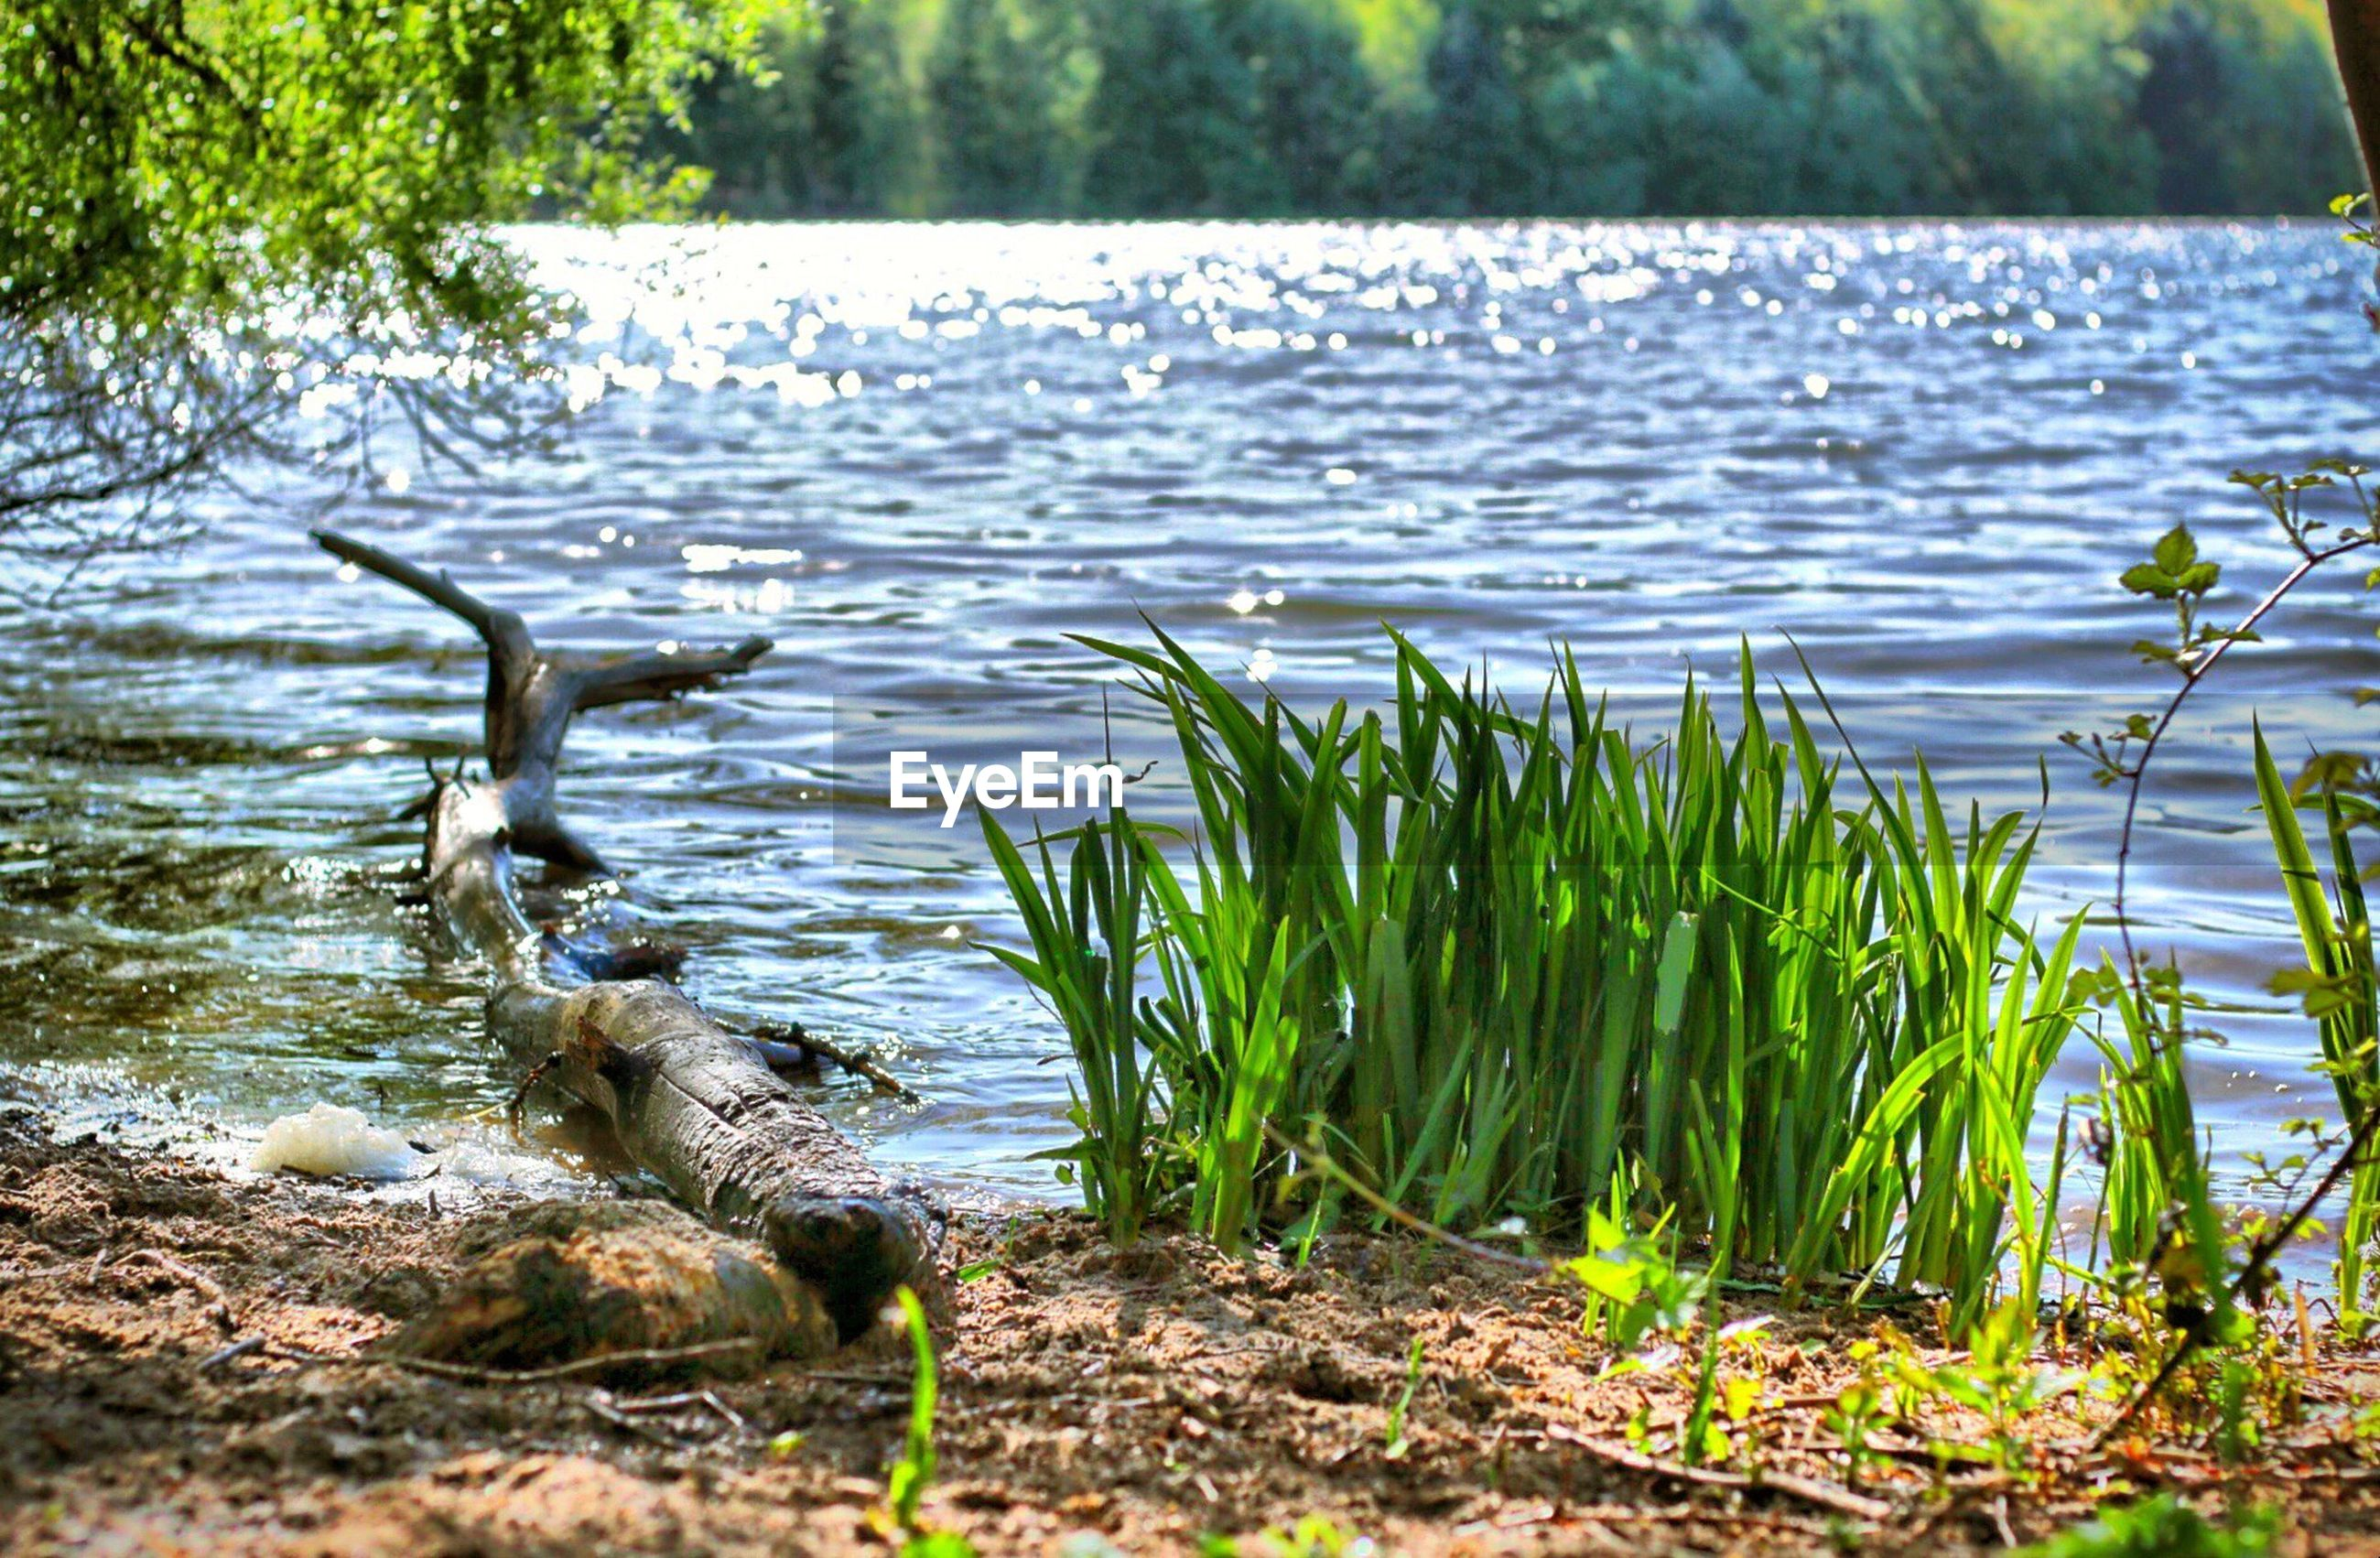 water, lake, tranquility, reflection, plant, nature, growth, lakeshore, grass, beauty in nature, tranquil scene, scenics, rippled, idyllic, day, outdoors, no people, growing, green color, forest